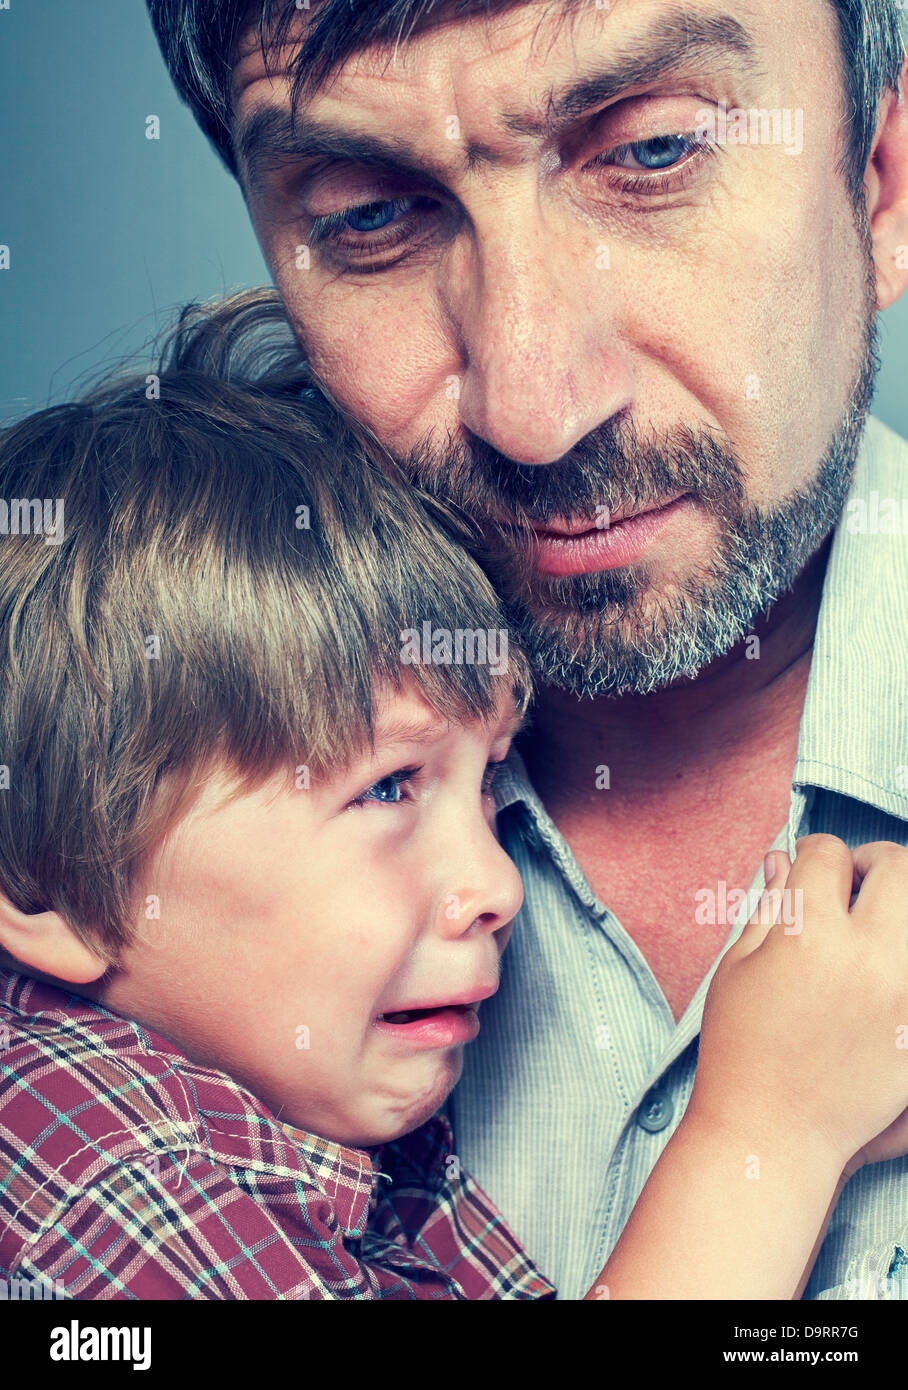 Père a compassion de ses fils Photo Stock